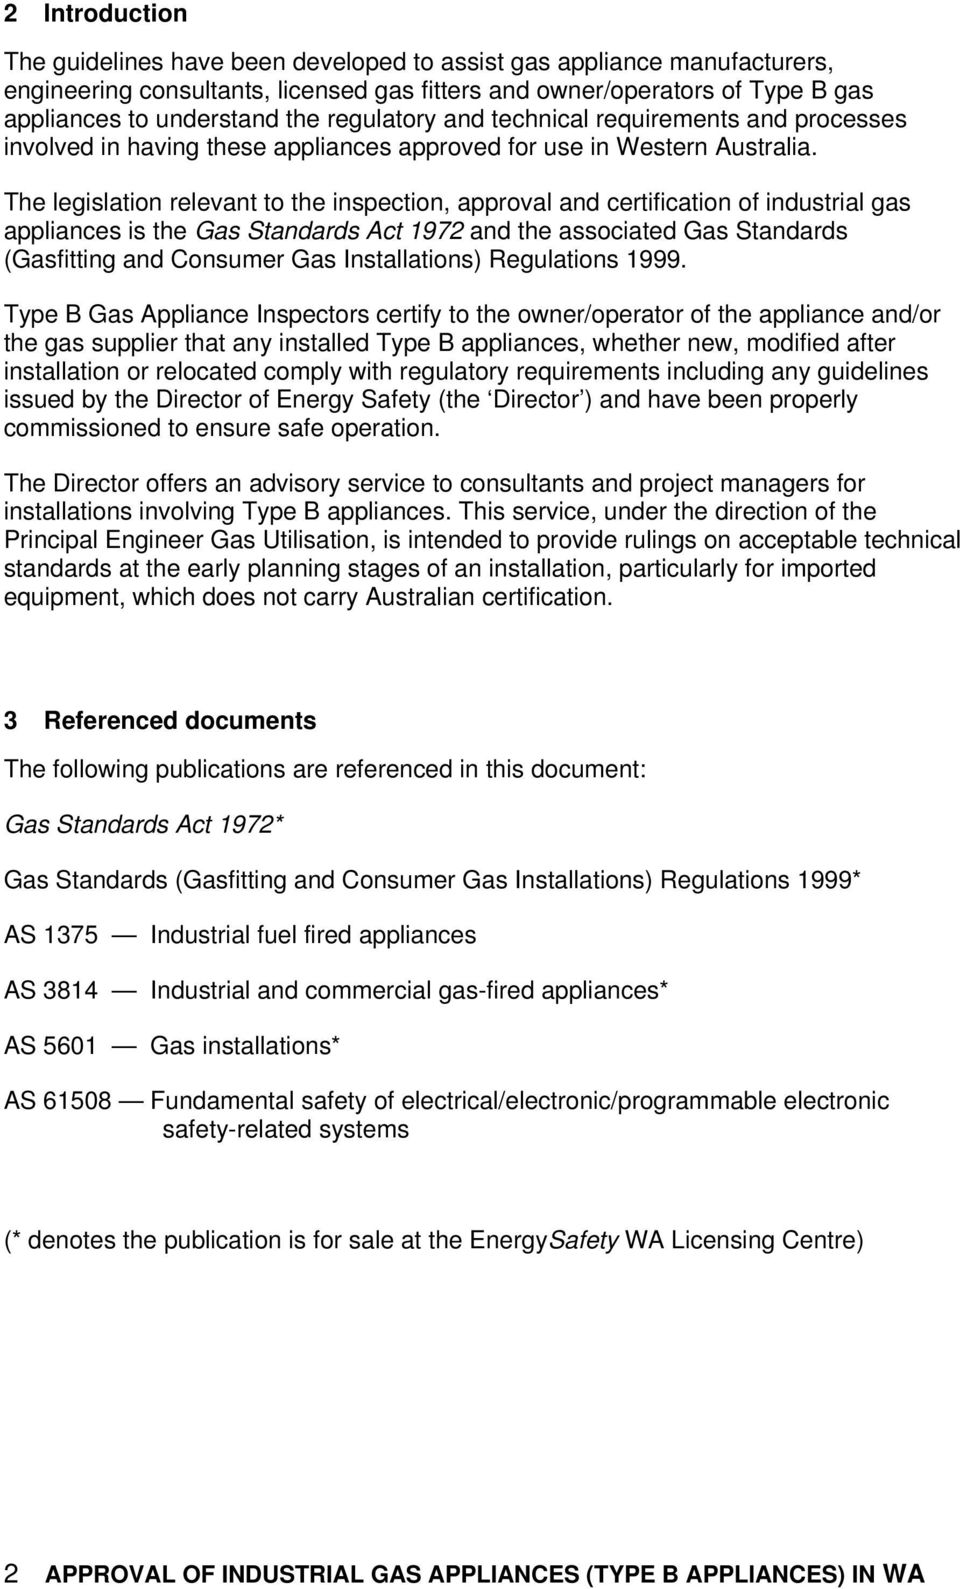 The legislation relevant to the inspection, approval and certification of industrial gas appliances is the Gas Standards Act 1972 and the associated Gas Standards (Gasfitting and Consumer Gas